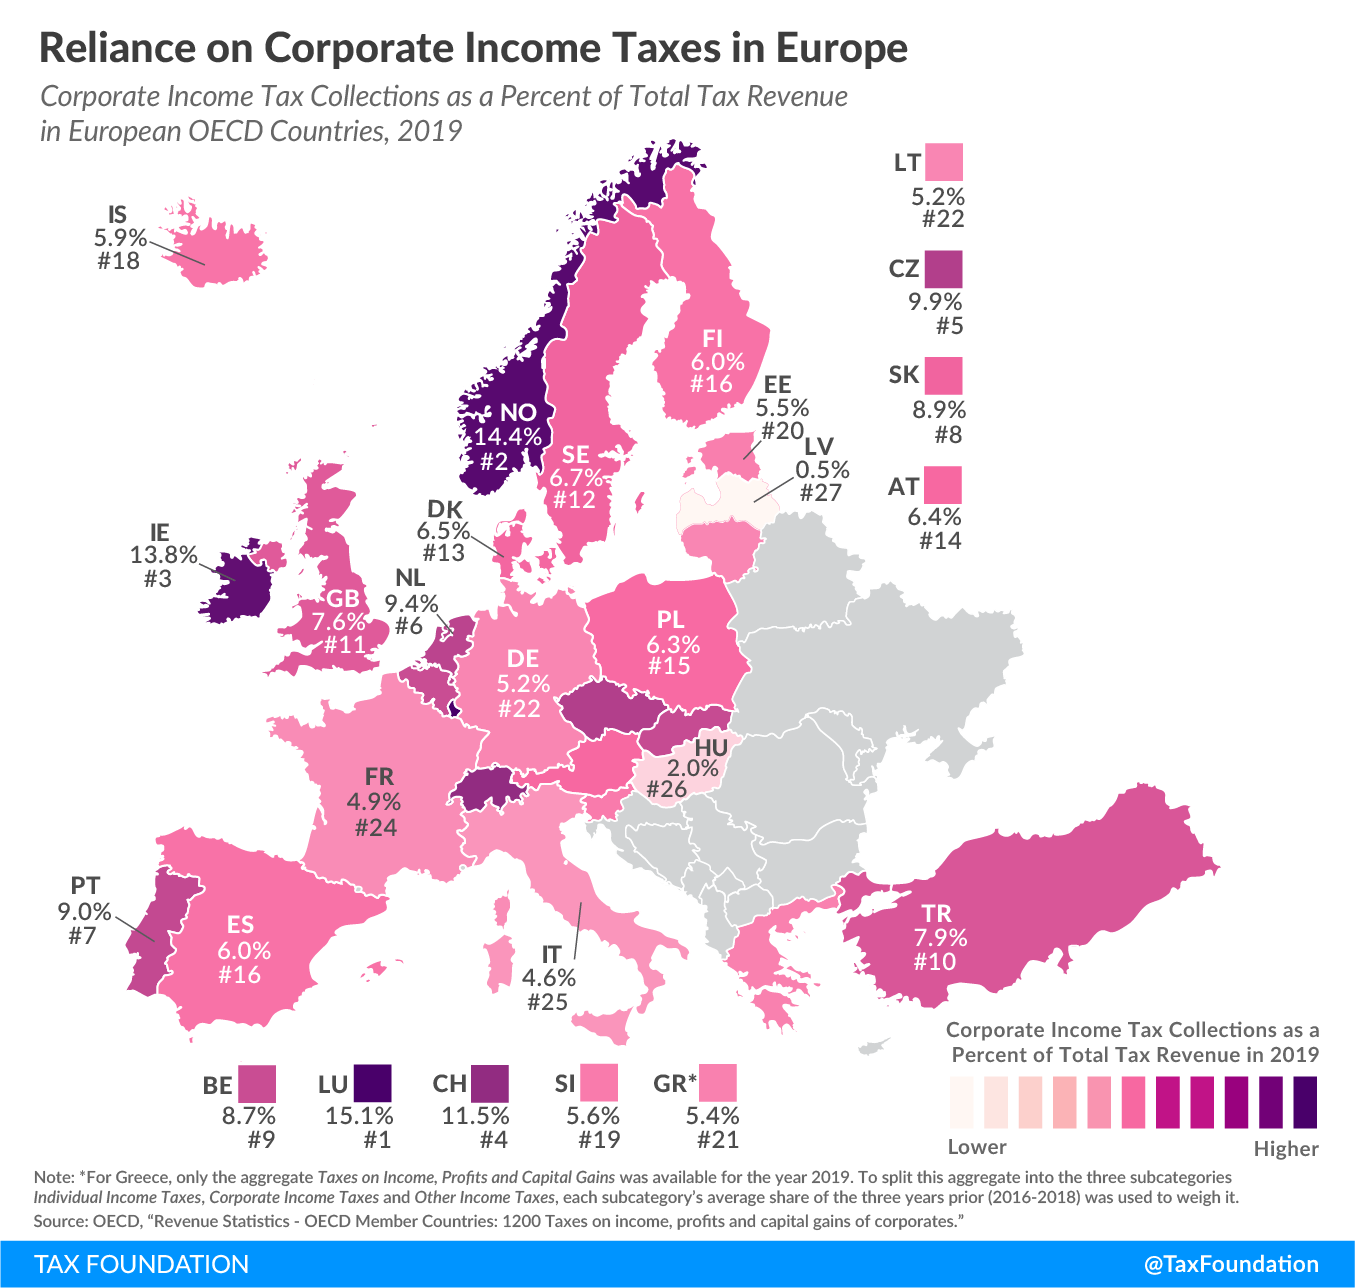 Reliance on corporate tax revenue in Europe 2021 reliance on corporate income taxes in Europe how much do countries in europe rely on corporate income taxes? revenue from corporate income